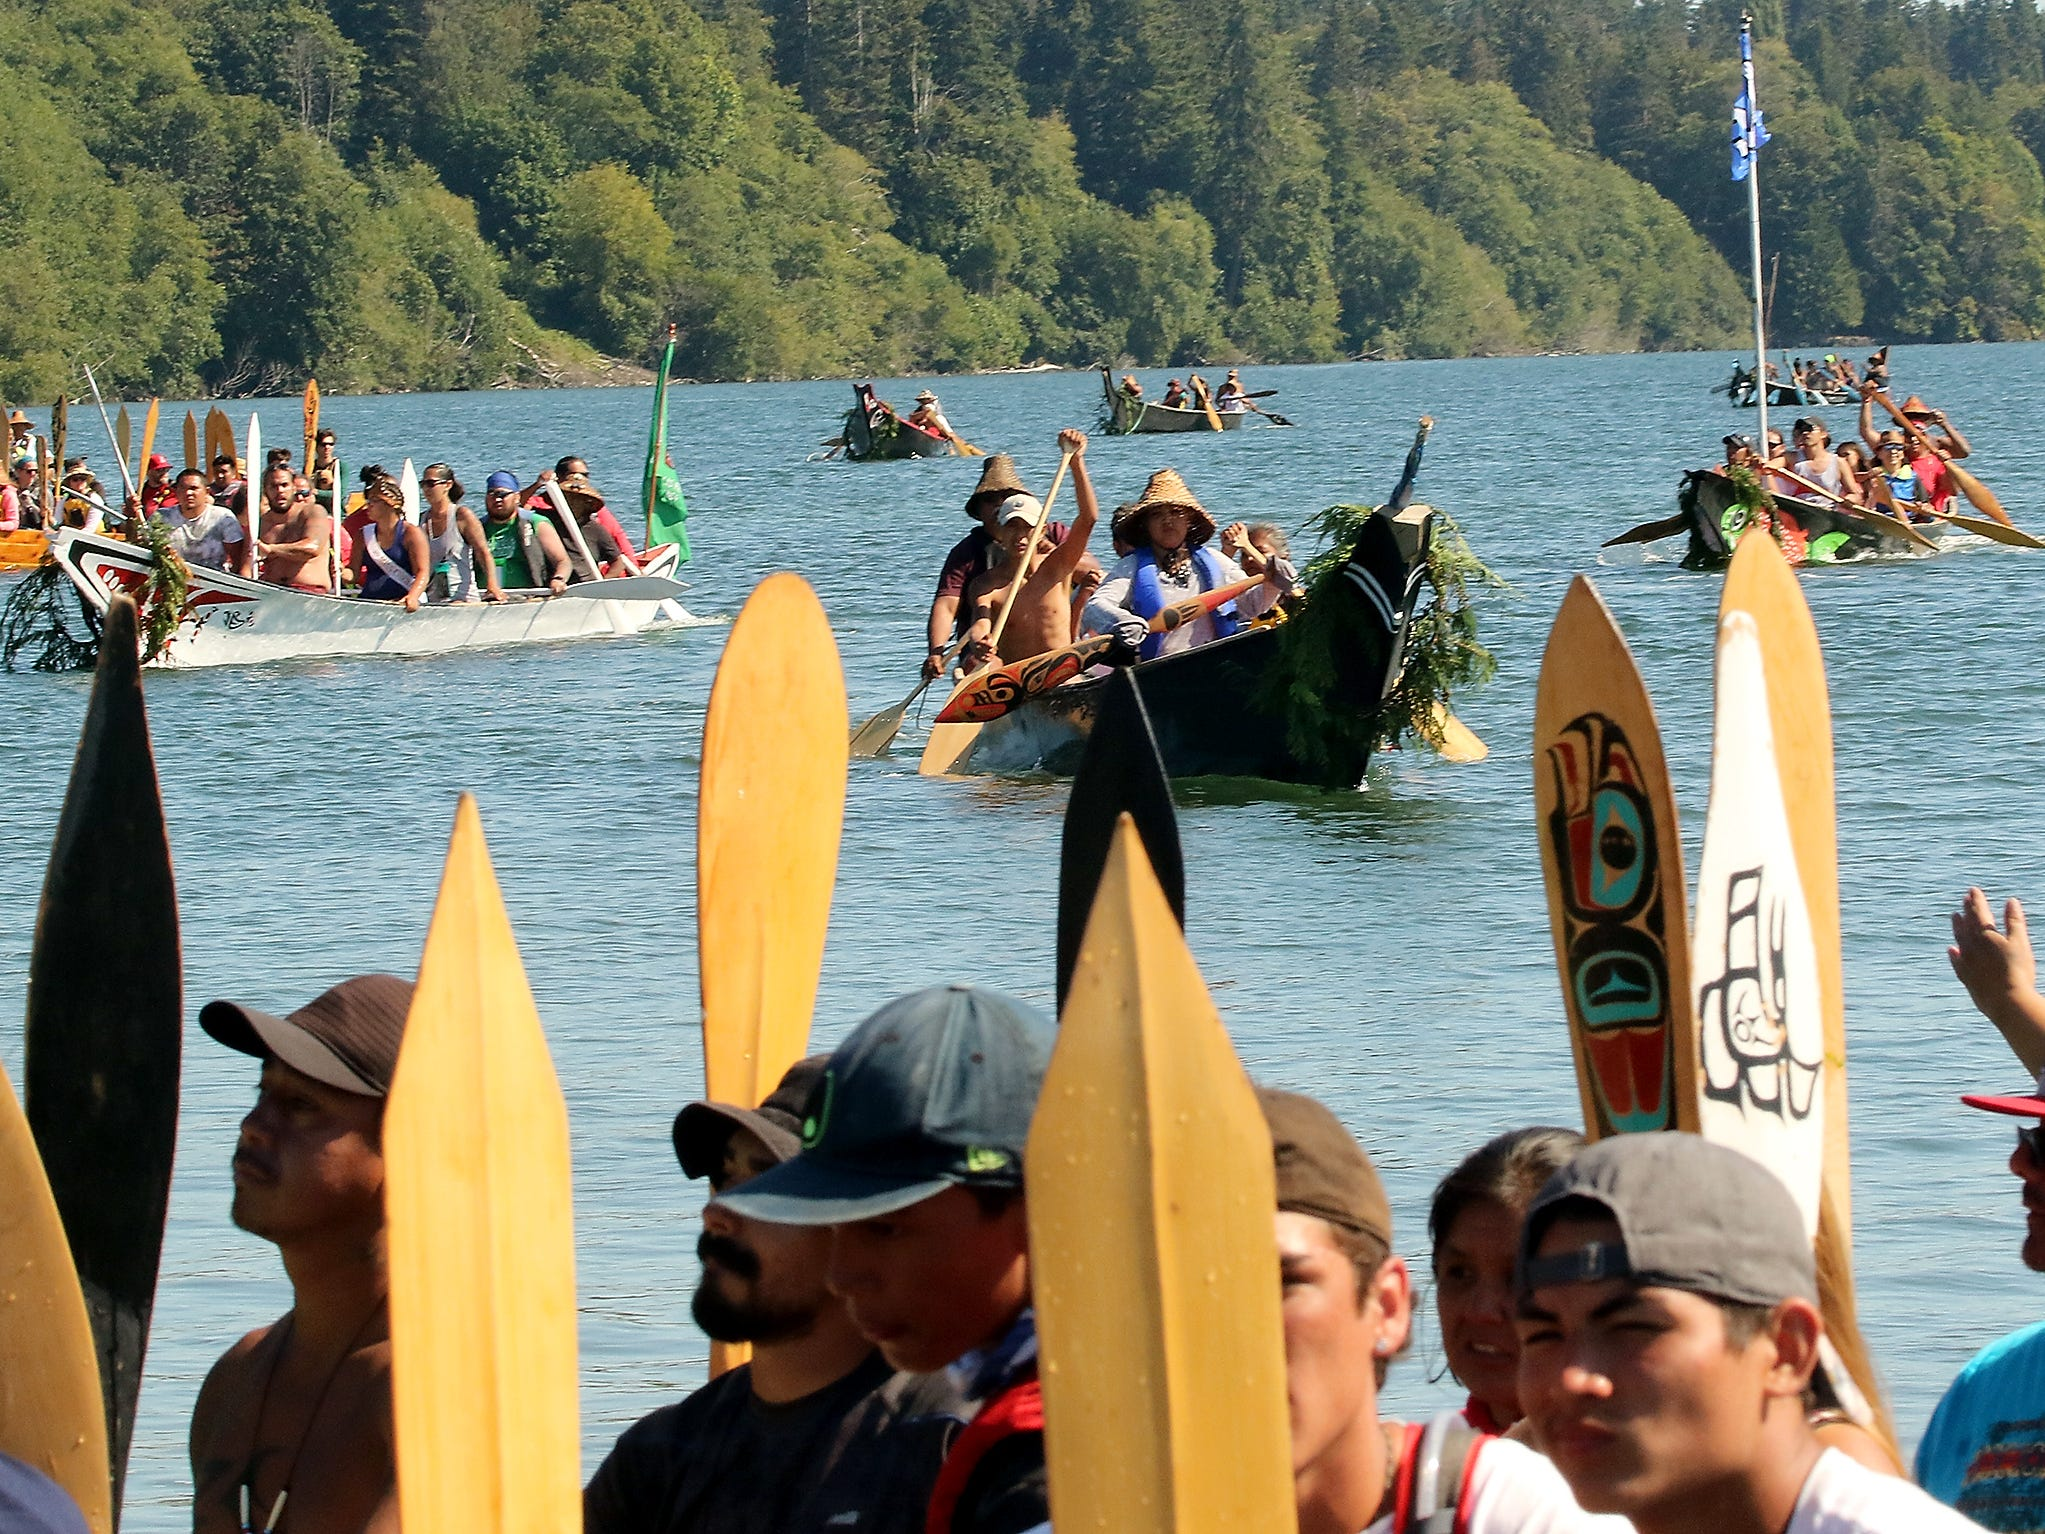 Tribal Canoe Journey ÒPaddle to PuyallupÓ canoes head for the shore to ask and await permission from the Port Gamble S'Klallam Tribe to come ashore at Point Julia on Tuesday, July 24, 2018.